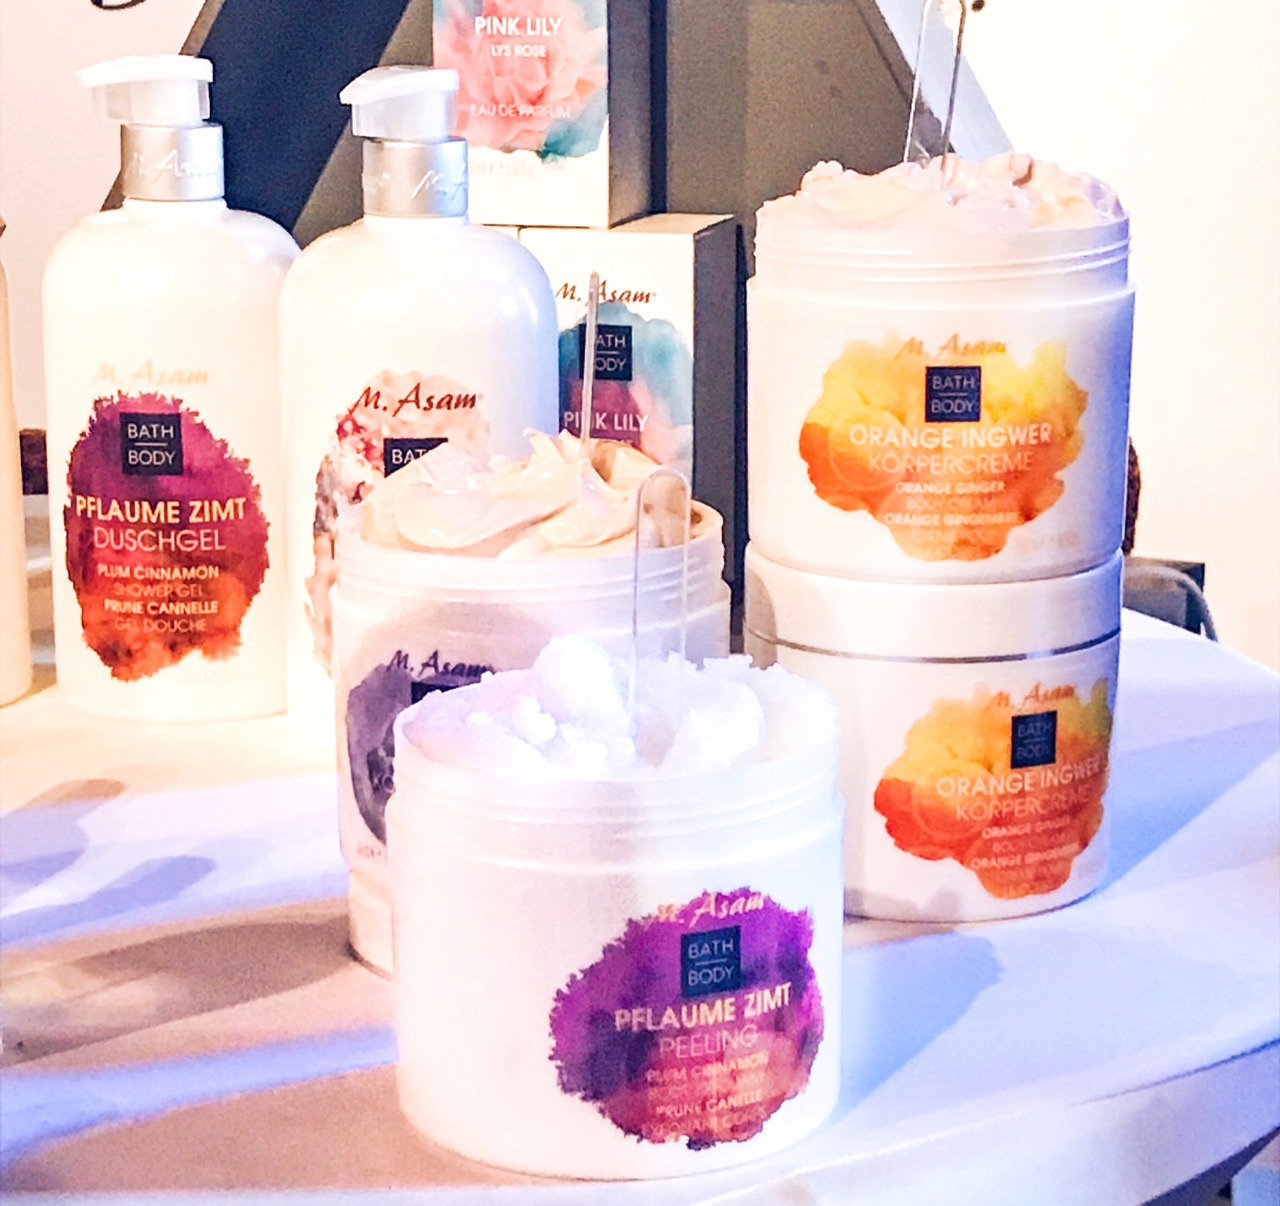 Beautypress Blogger Event Oktober 2018 M Asam Winterdüfte